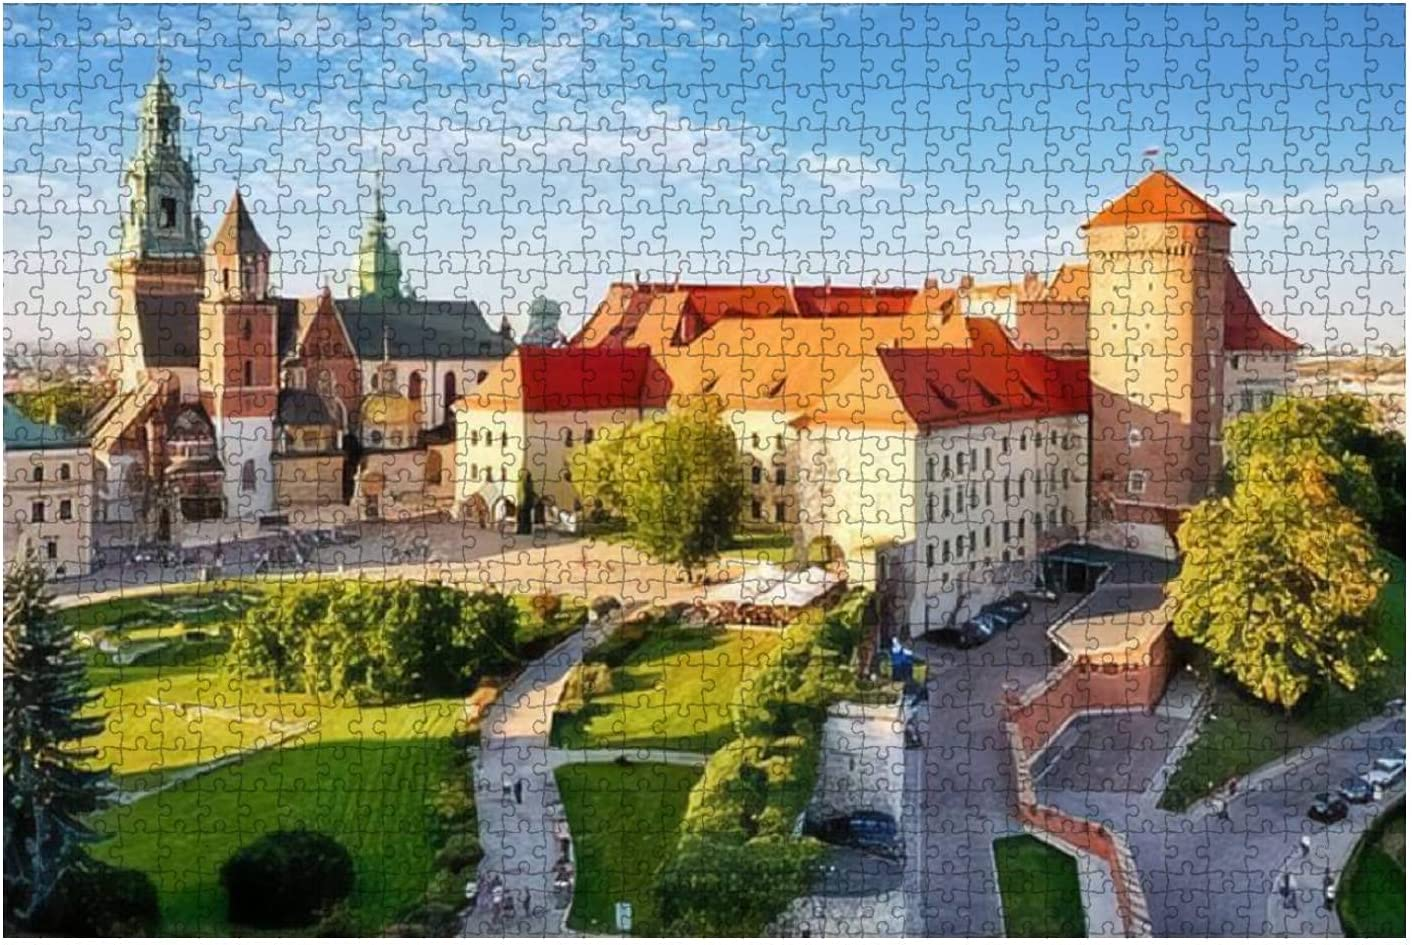 1 year warranty Jigsaw Puzzle Krakow Wawel Castle at Pu Kids Wood New color Day Adults for